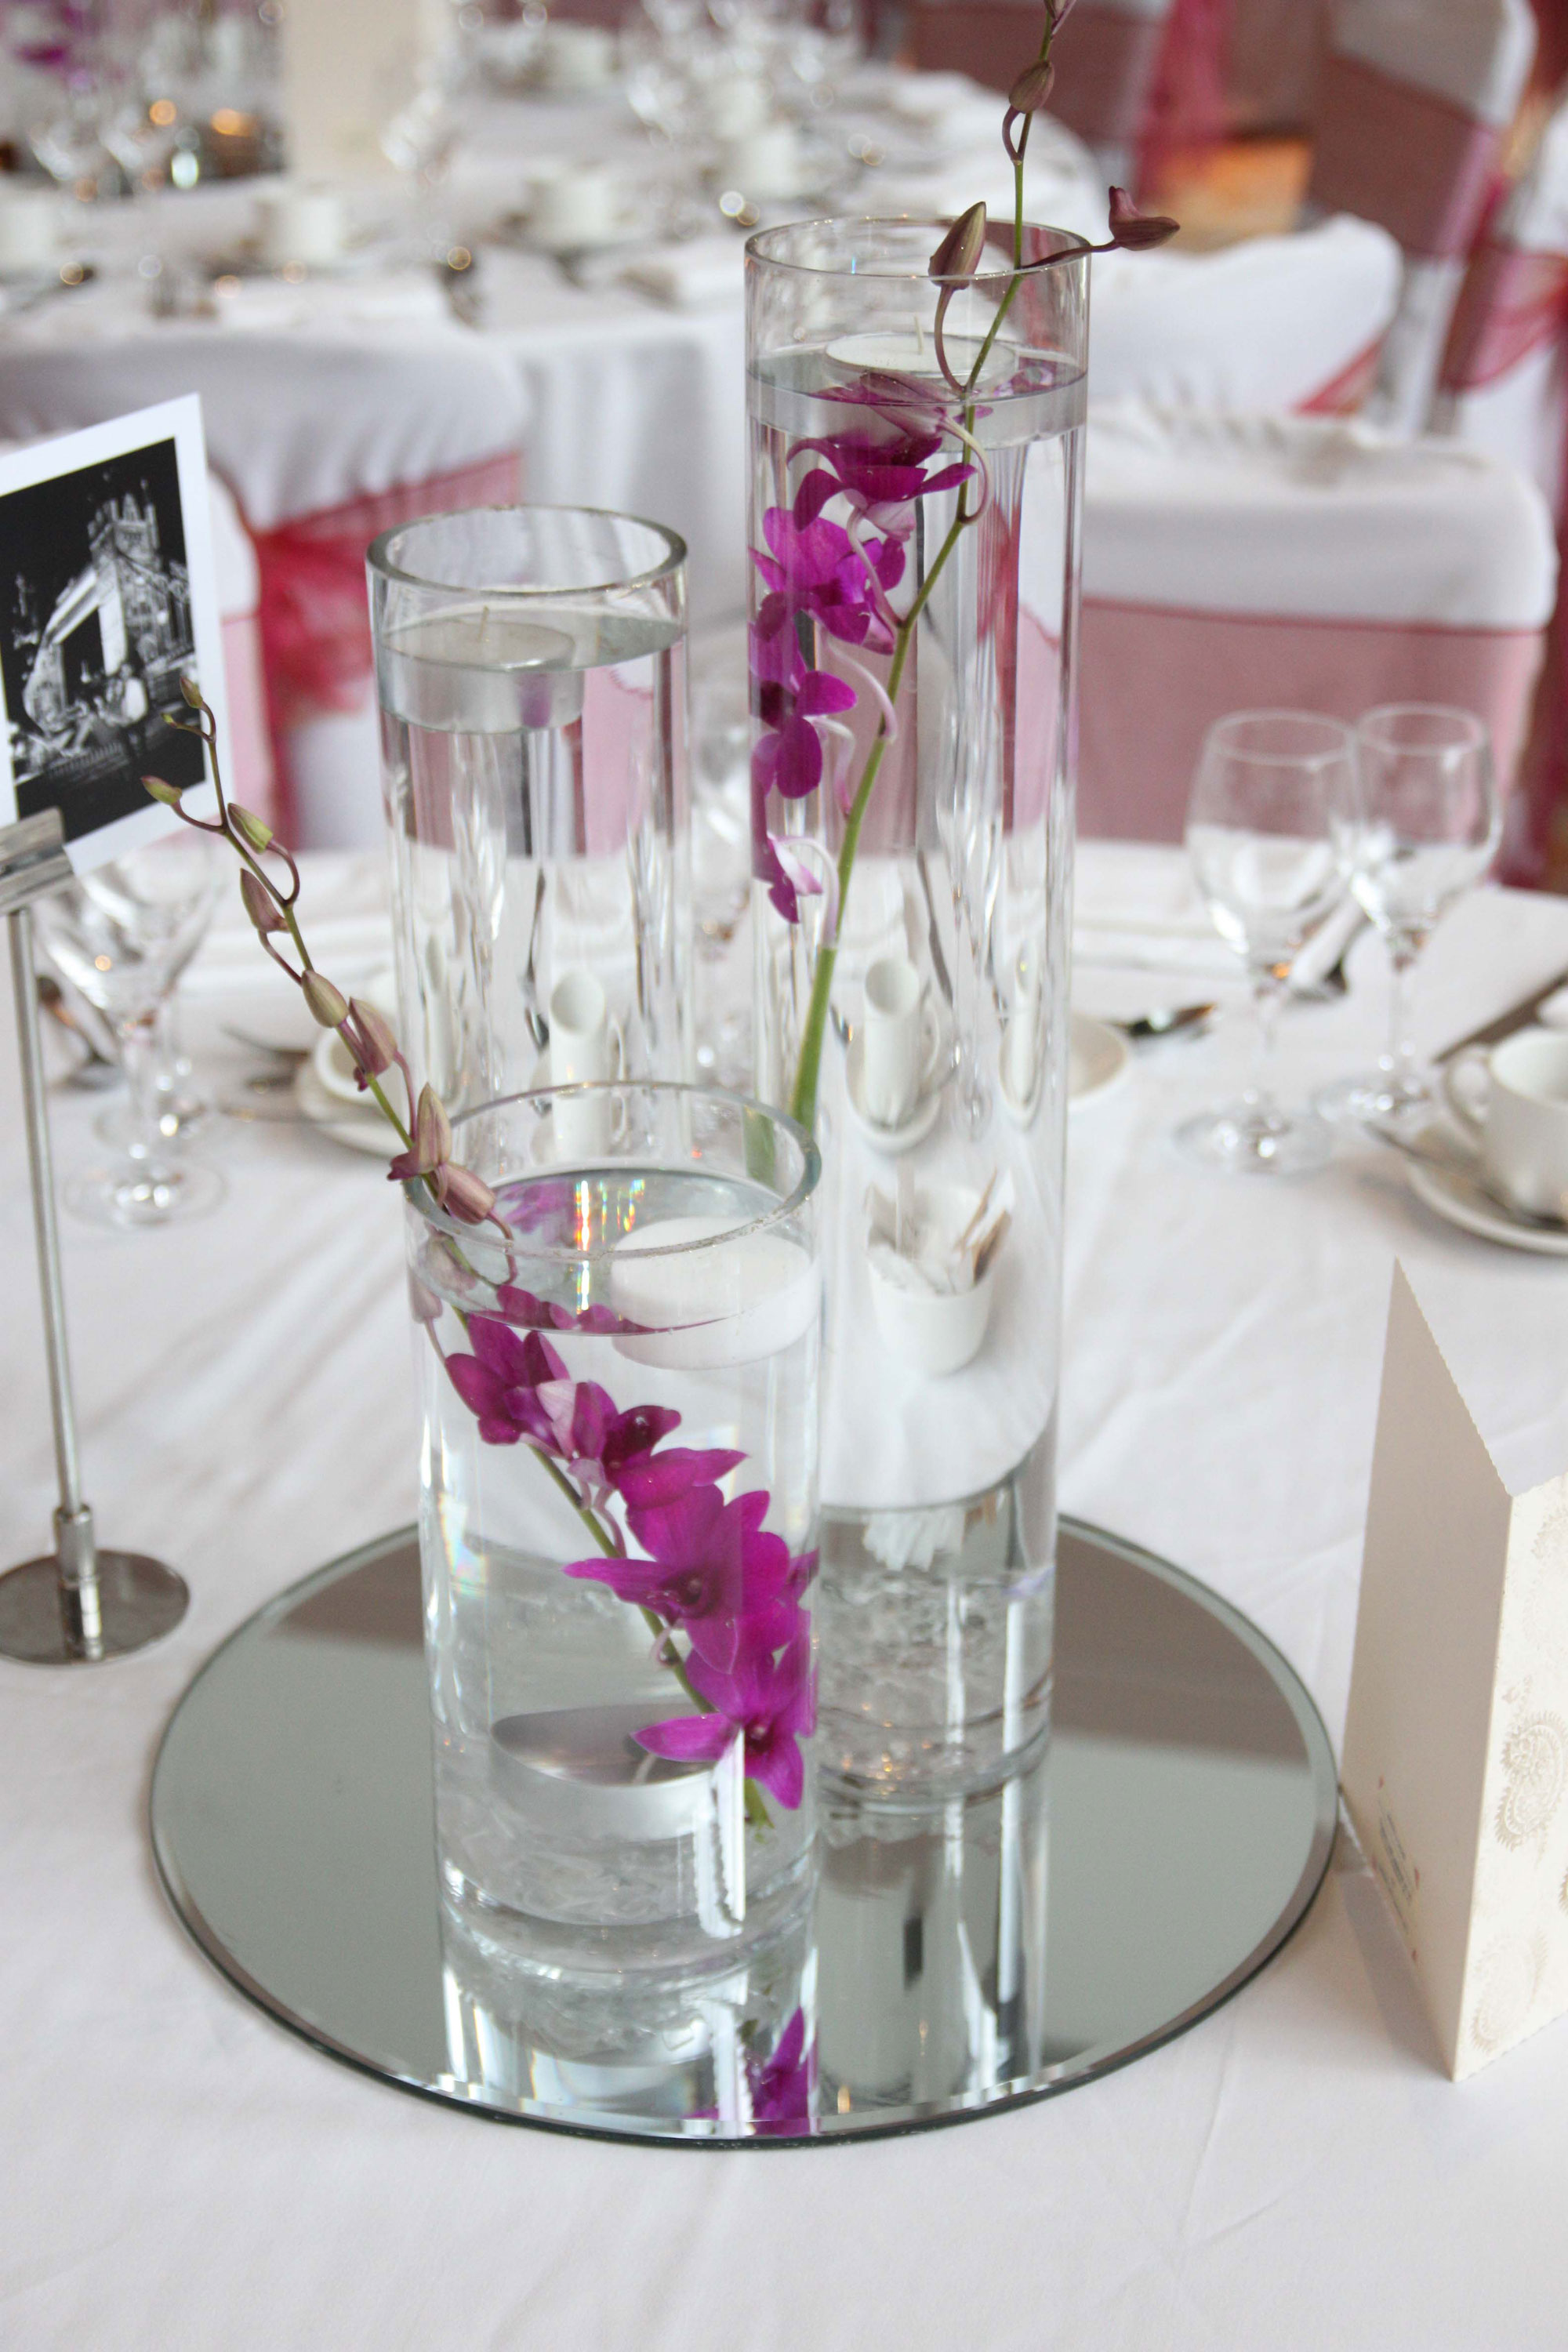 3-vases-£60-per-table